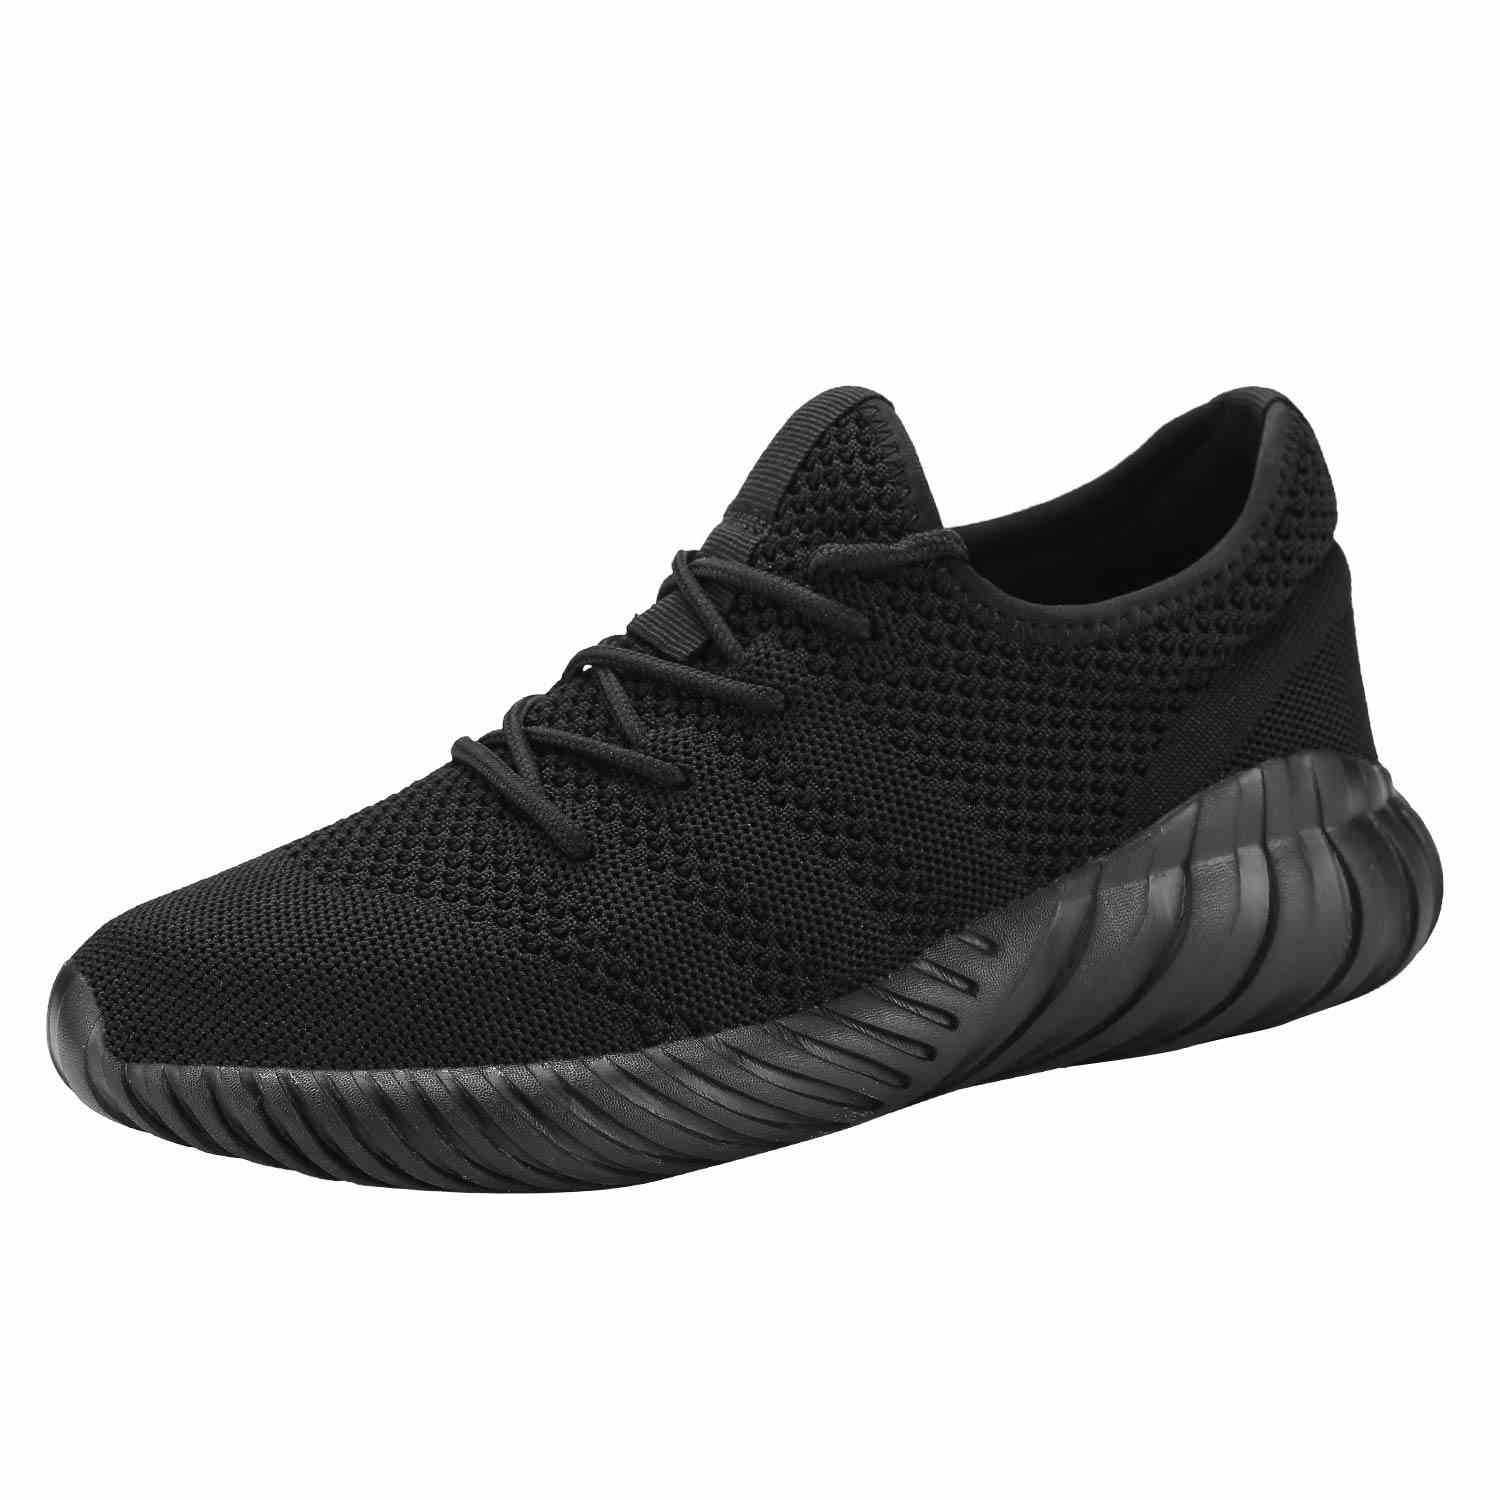 Mens Sport Baseball Shoes Knitted Fashion Outdoor Sneakers